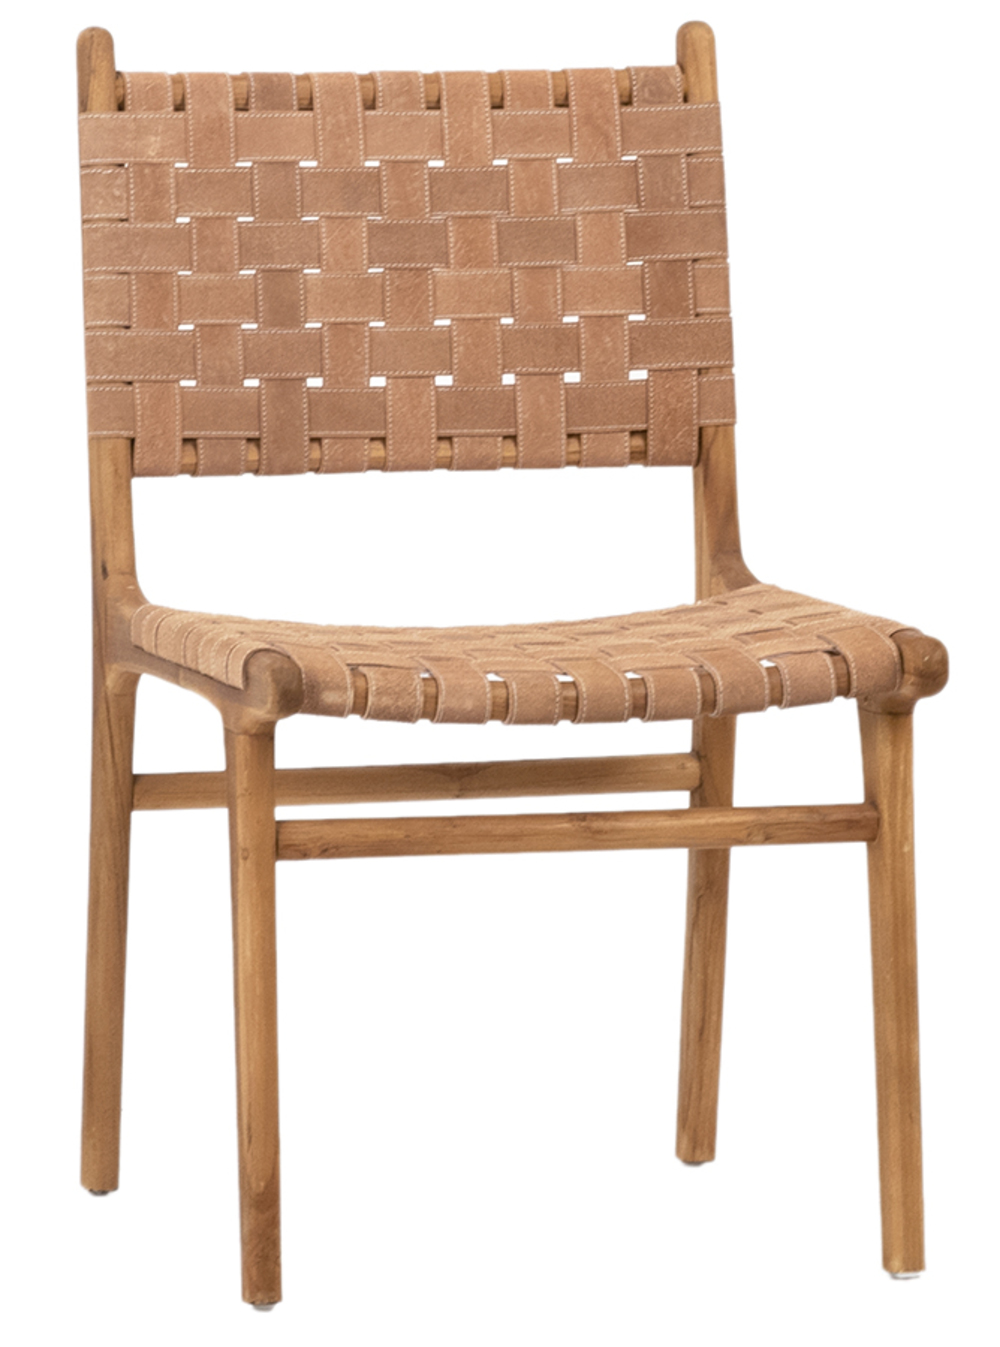 Dovetail Furniture - Silano Dining Chair